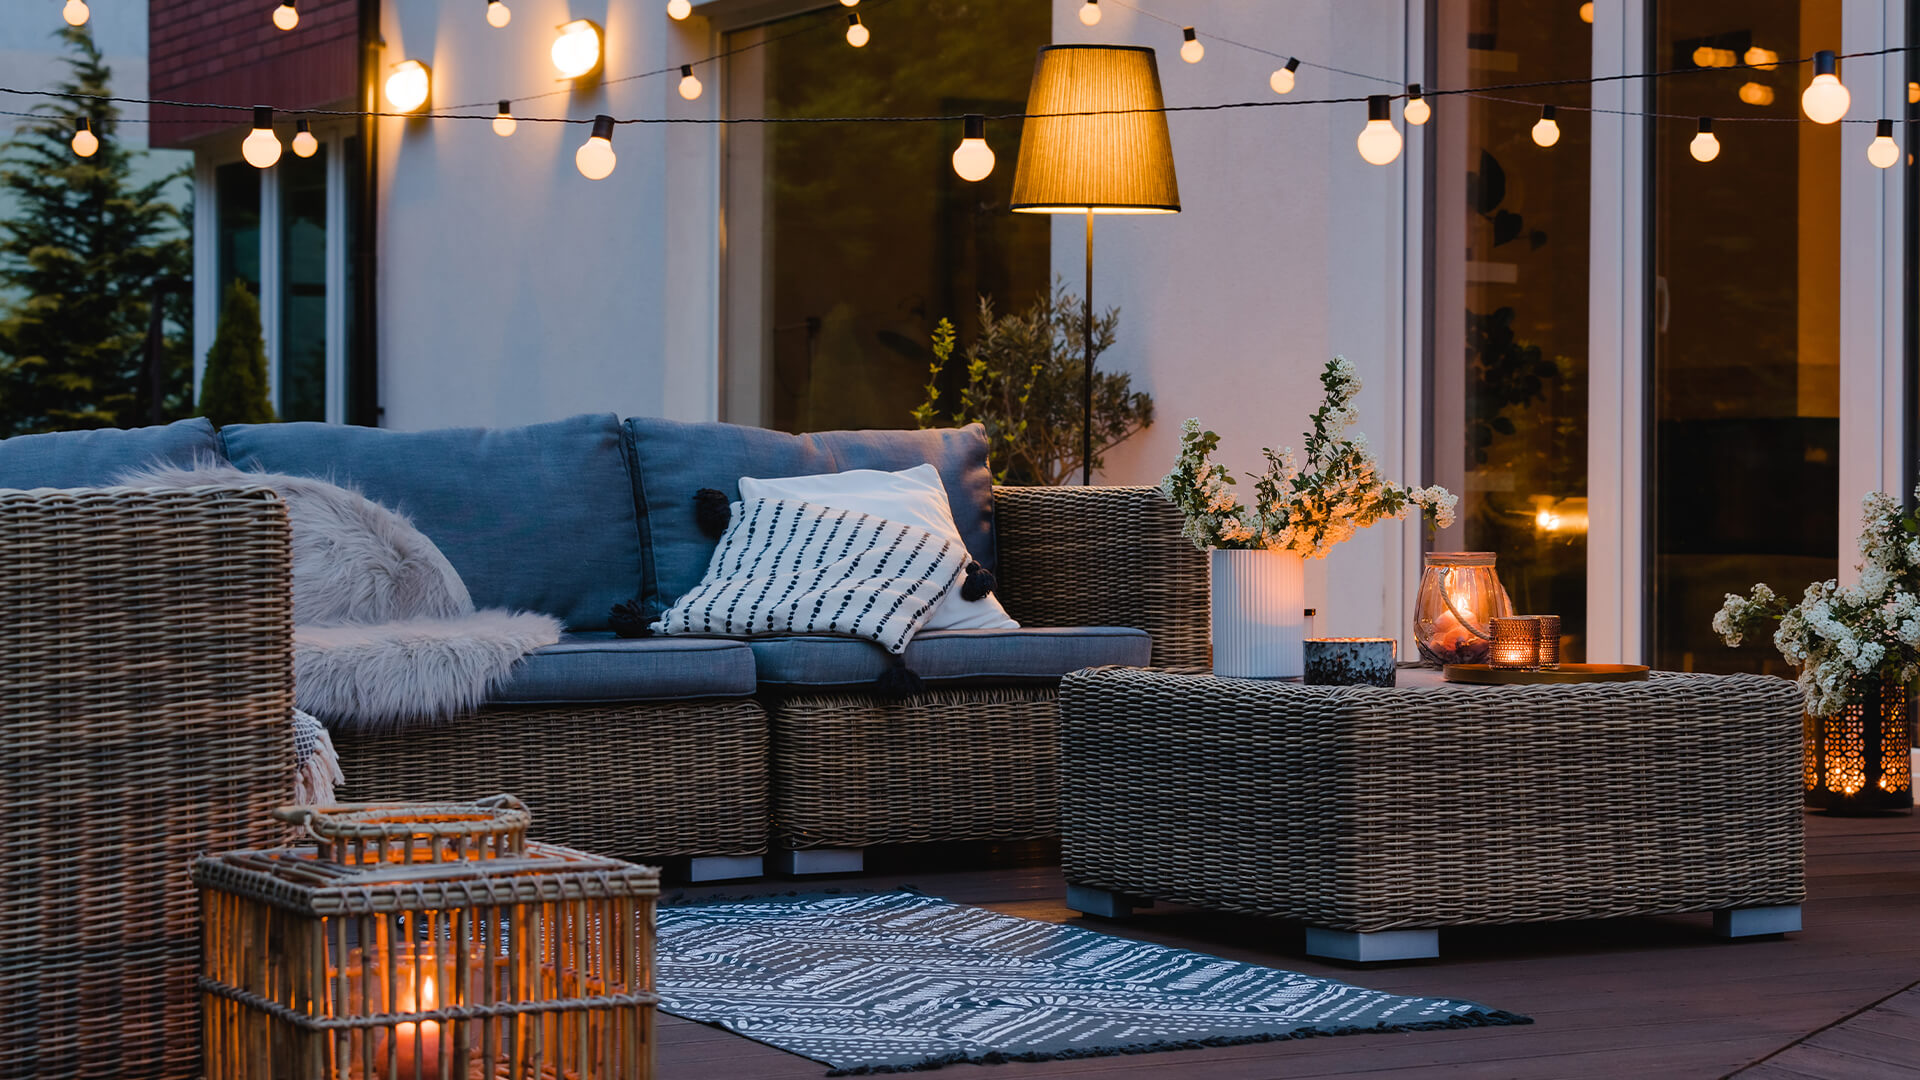 Outdoor sitting area of a rented home. There are comfy chairs, an outdoor rug, and fairy lights